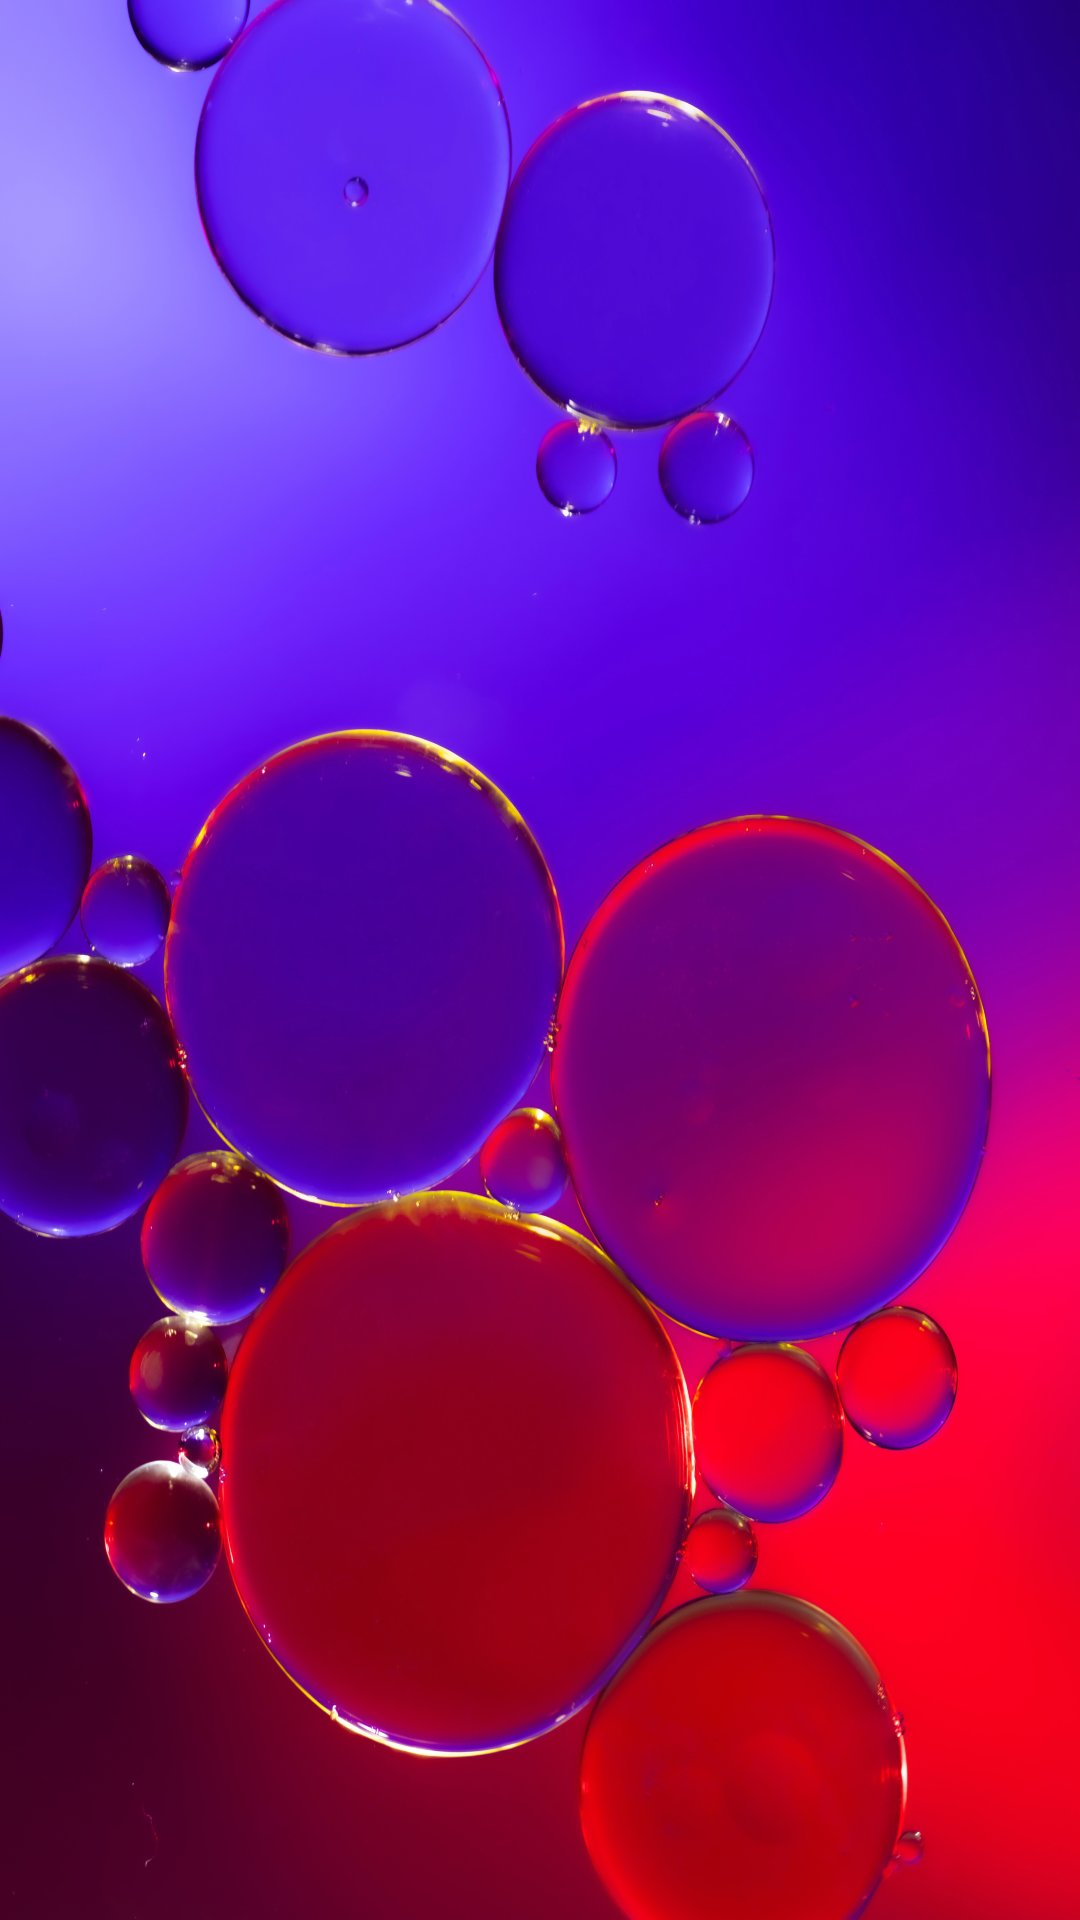 blue,red,Bubble,Colorful,4K